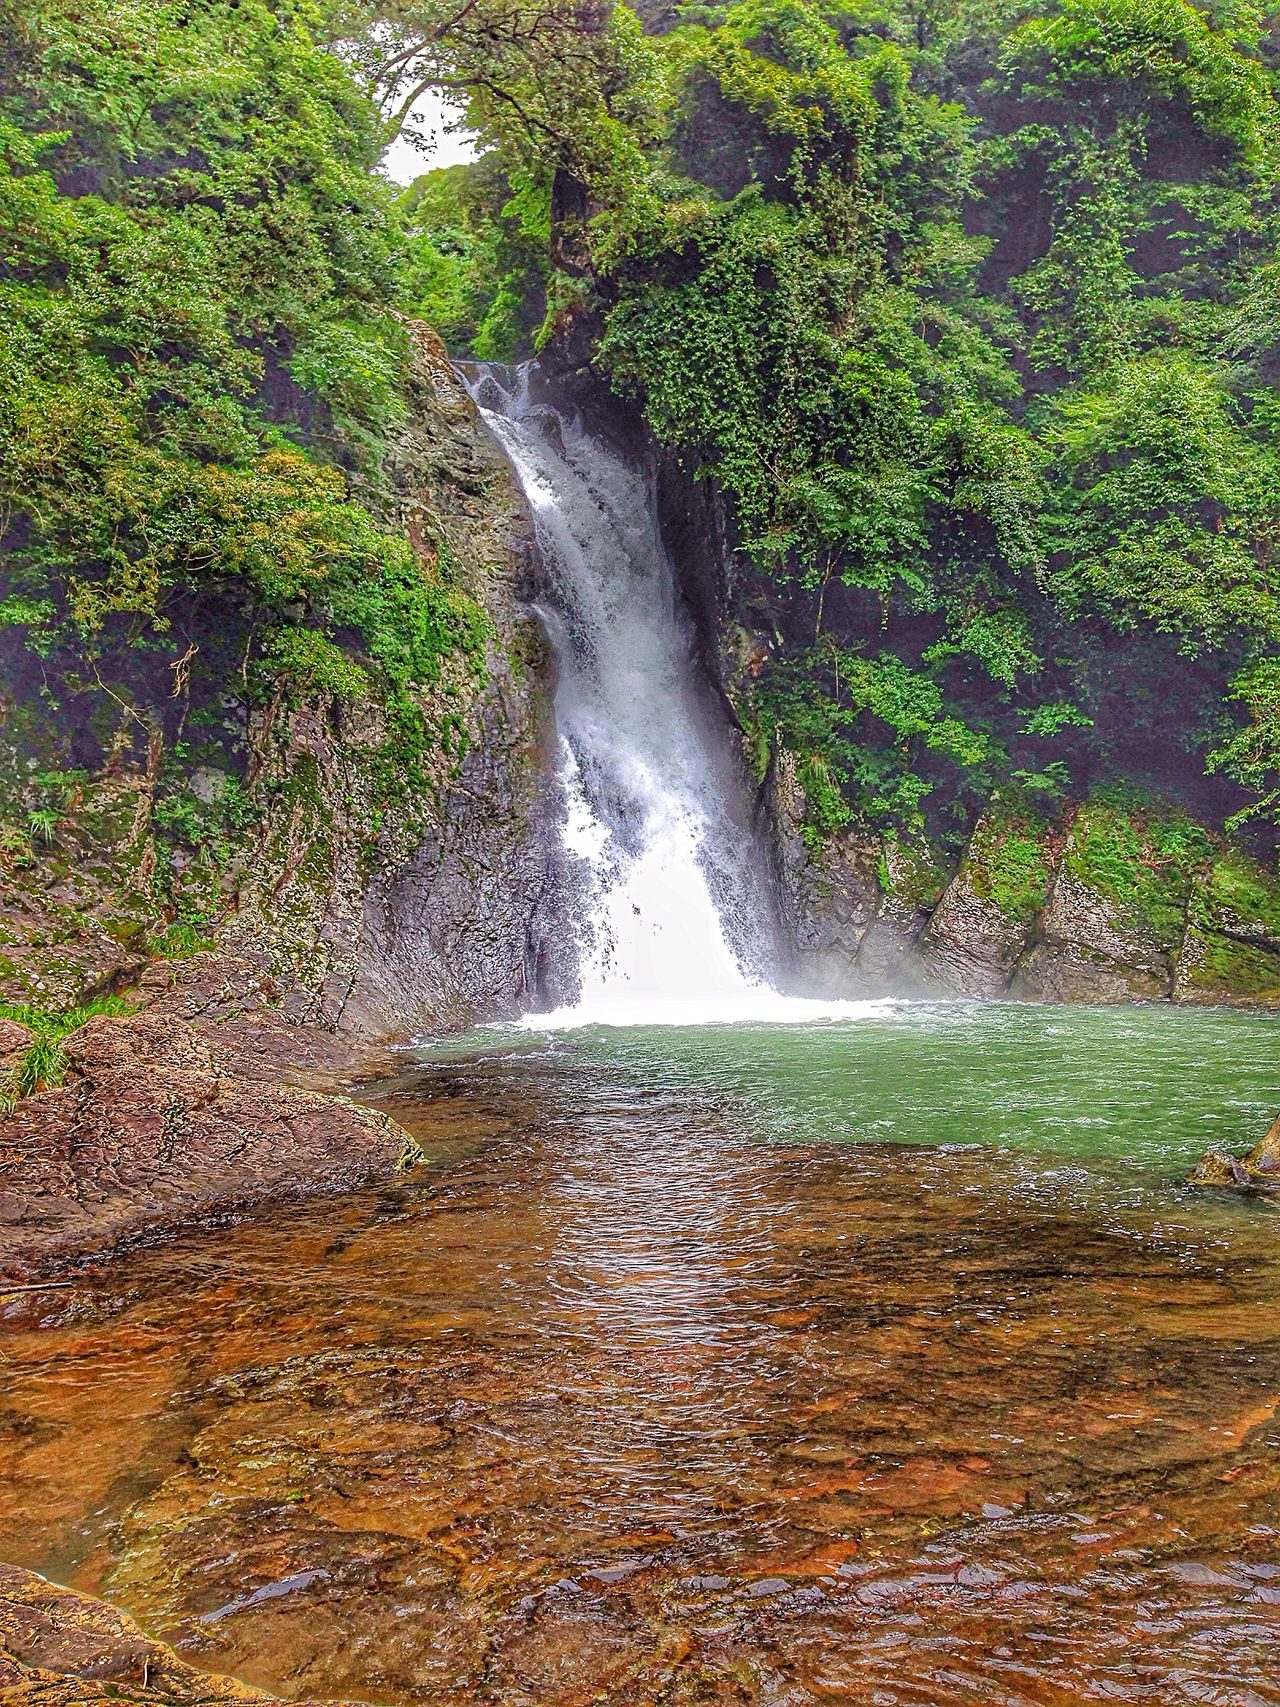 Beauty In Nature Chasing Waterfalls For I Grew Up The Mountains Nobody Around Mountains And Valleys Outdoor Photography Naturelovers Japan Scenery In Nagasaki, Perfecture The Great Outdoors - 2016 EyeEm Awards Waterfall #water #landscape #nature #beautiful